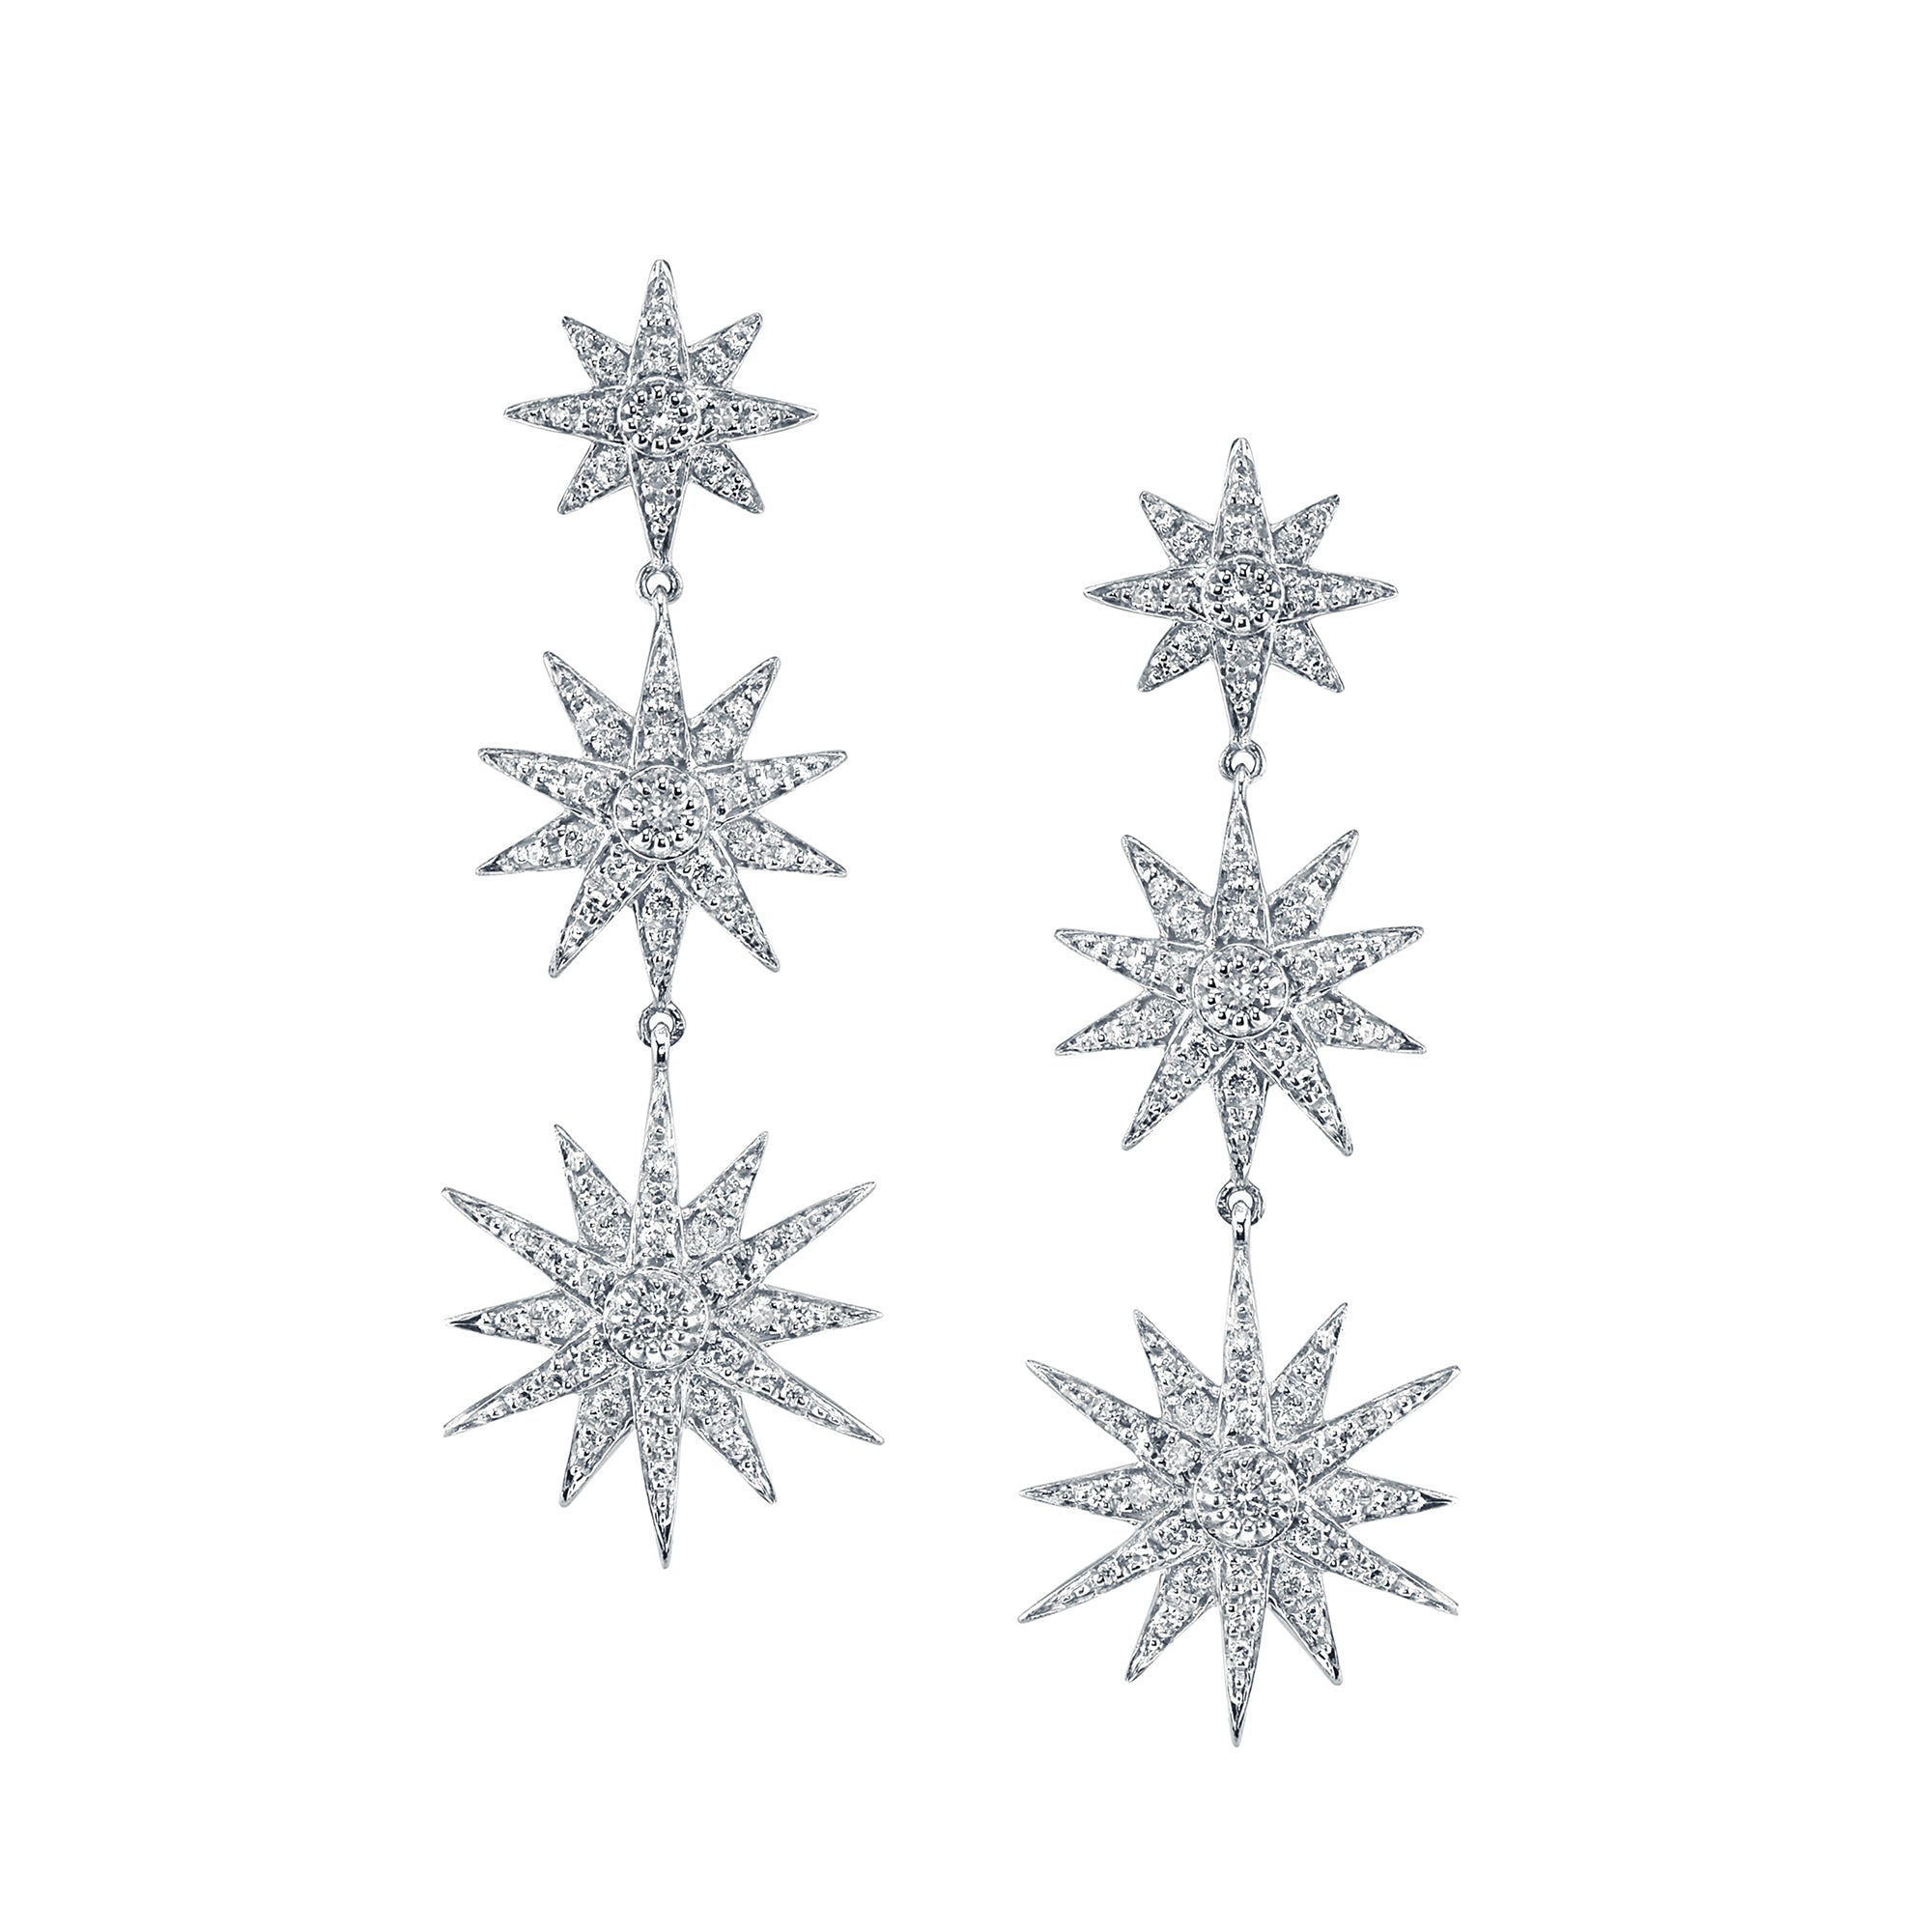 Starburst Drop Earrings by Shay for Broken English Jewelry